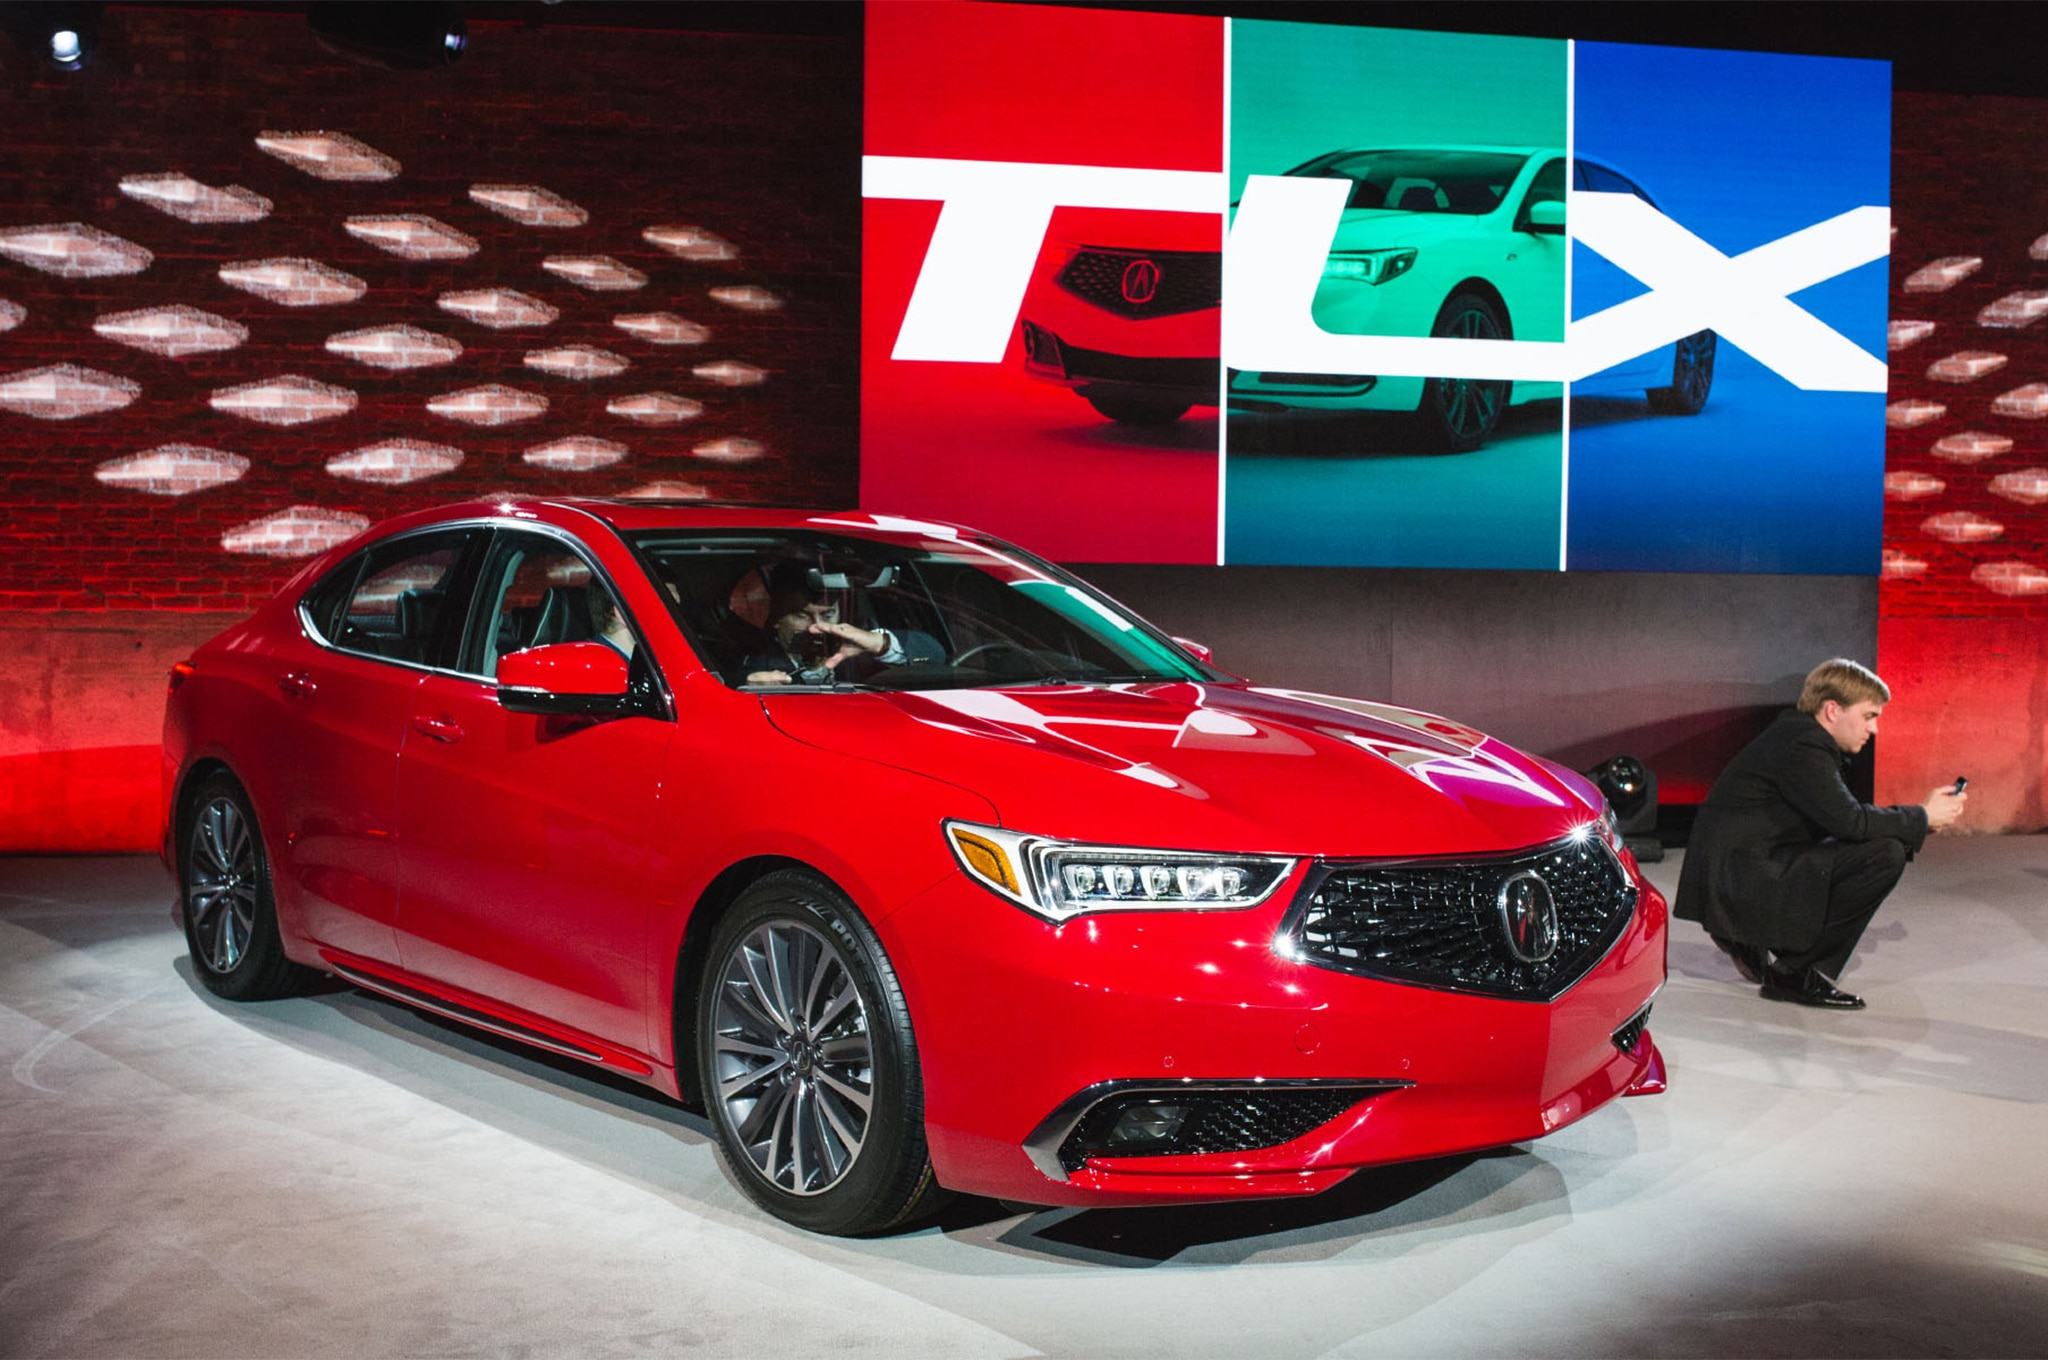 2018 Acura TLX Front Three Quarter 01